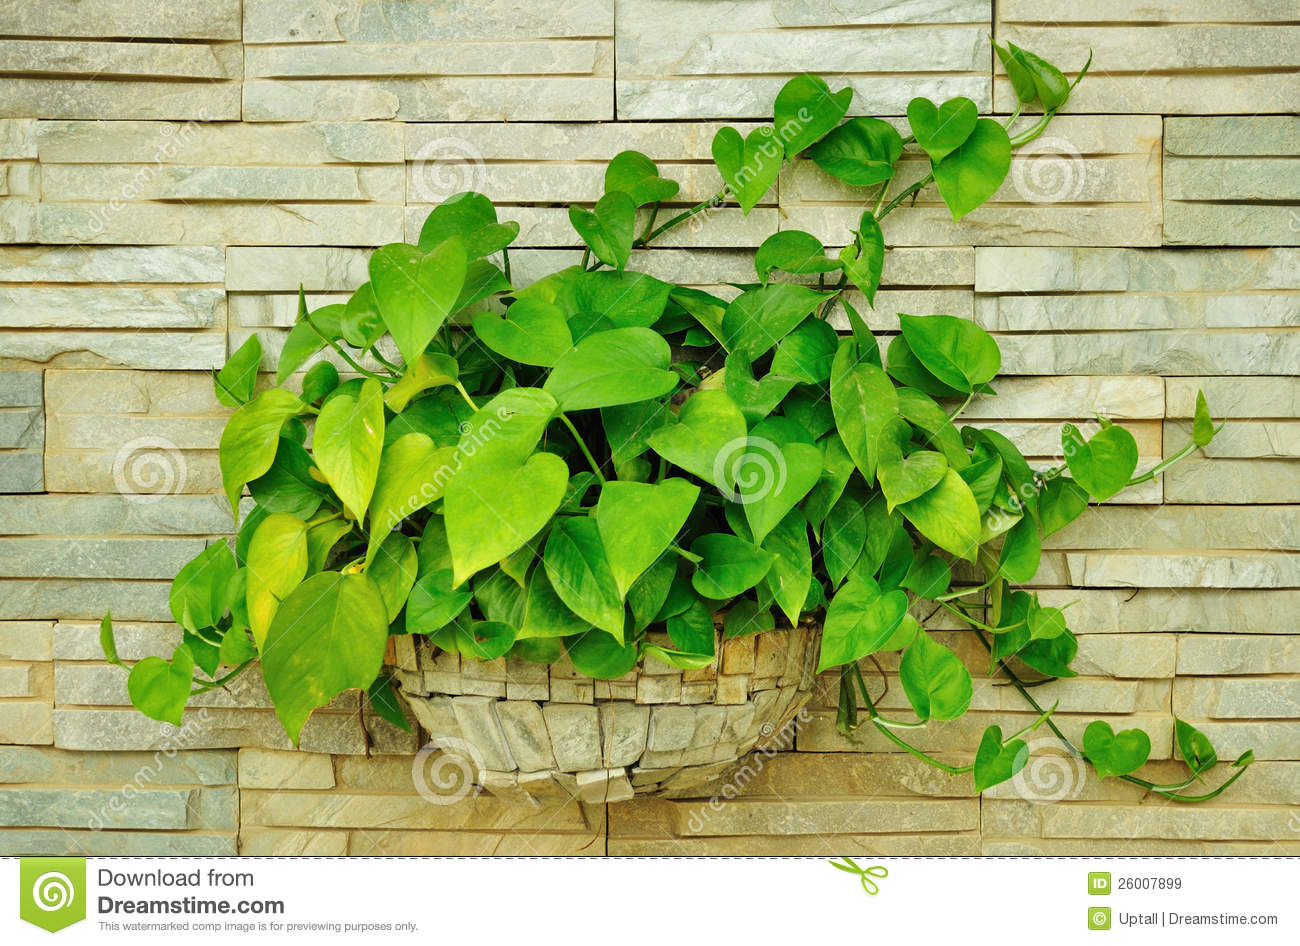 Interior Plant Wall Scindapsus Aureus Stock Image Image Of Slab Green